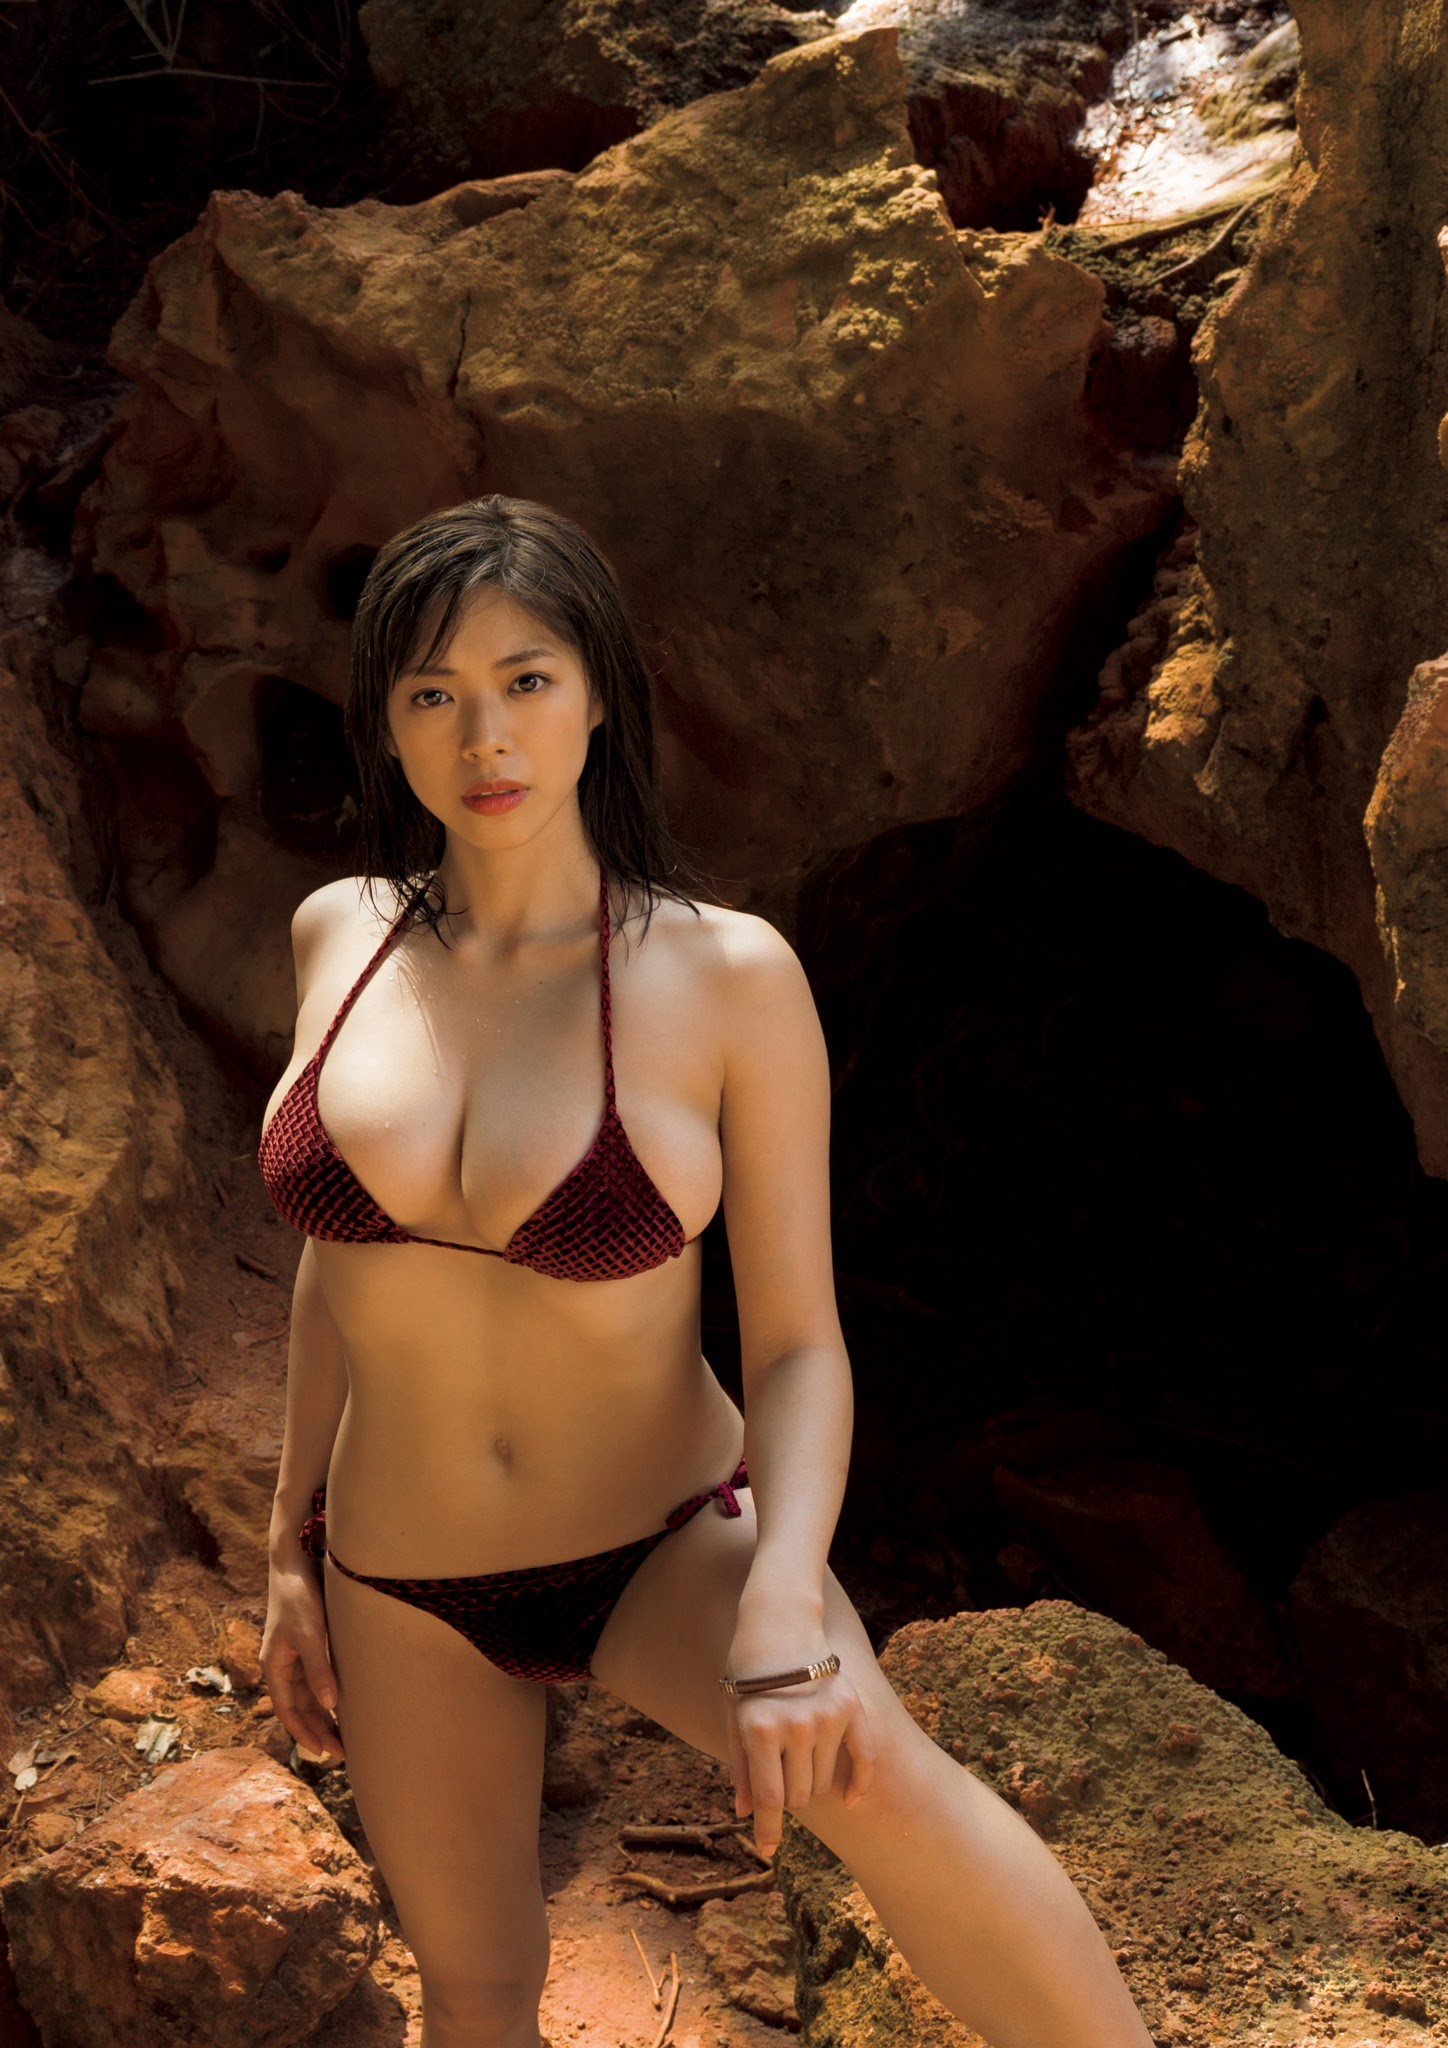 Super body of H cup Minami Wachi 2020 that exposes body and mind in tropical Thailand026